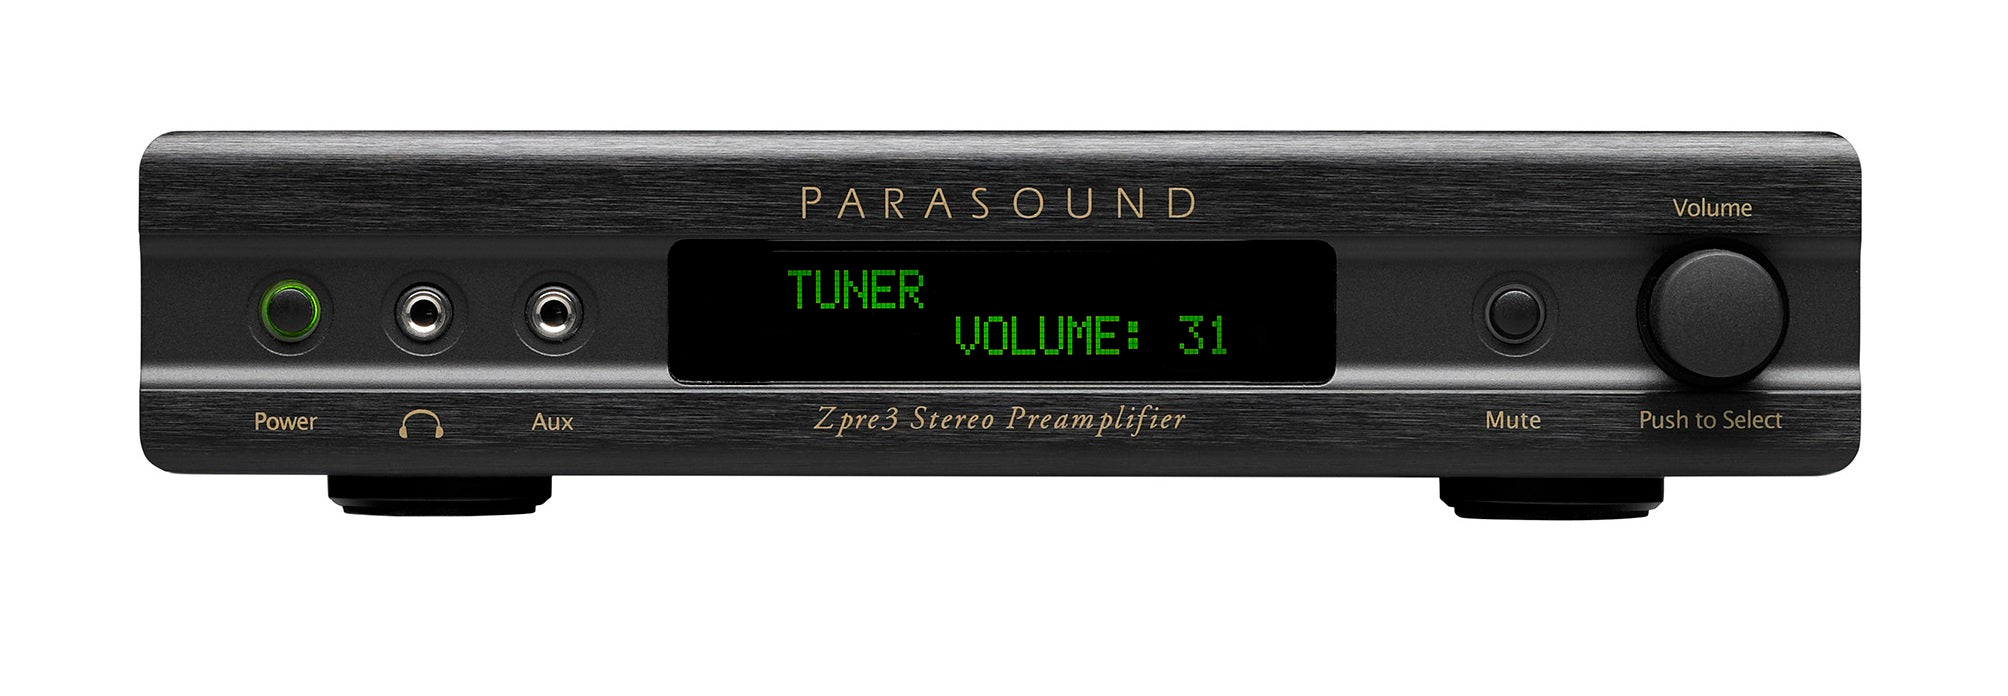 Parasound ZPre3 Two Channel Zone Preamplifier - Safe and Sound HQ